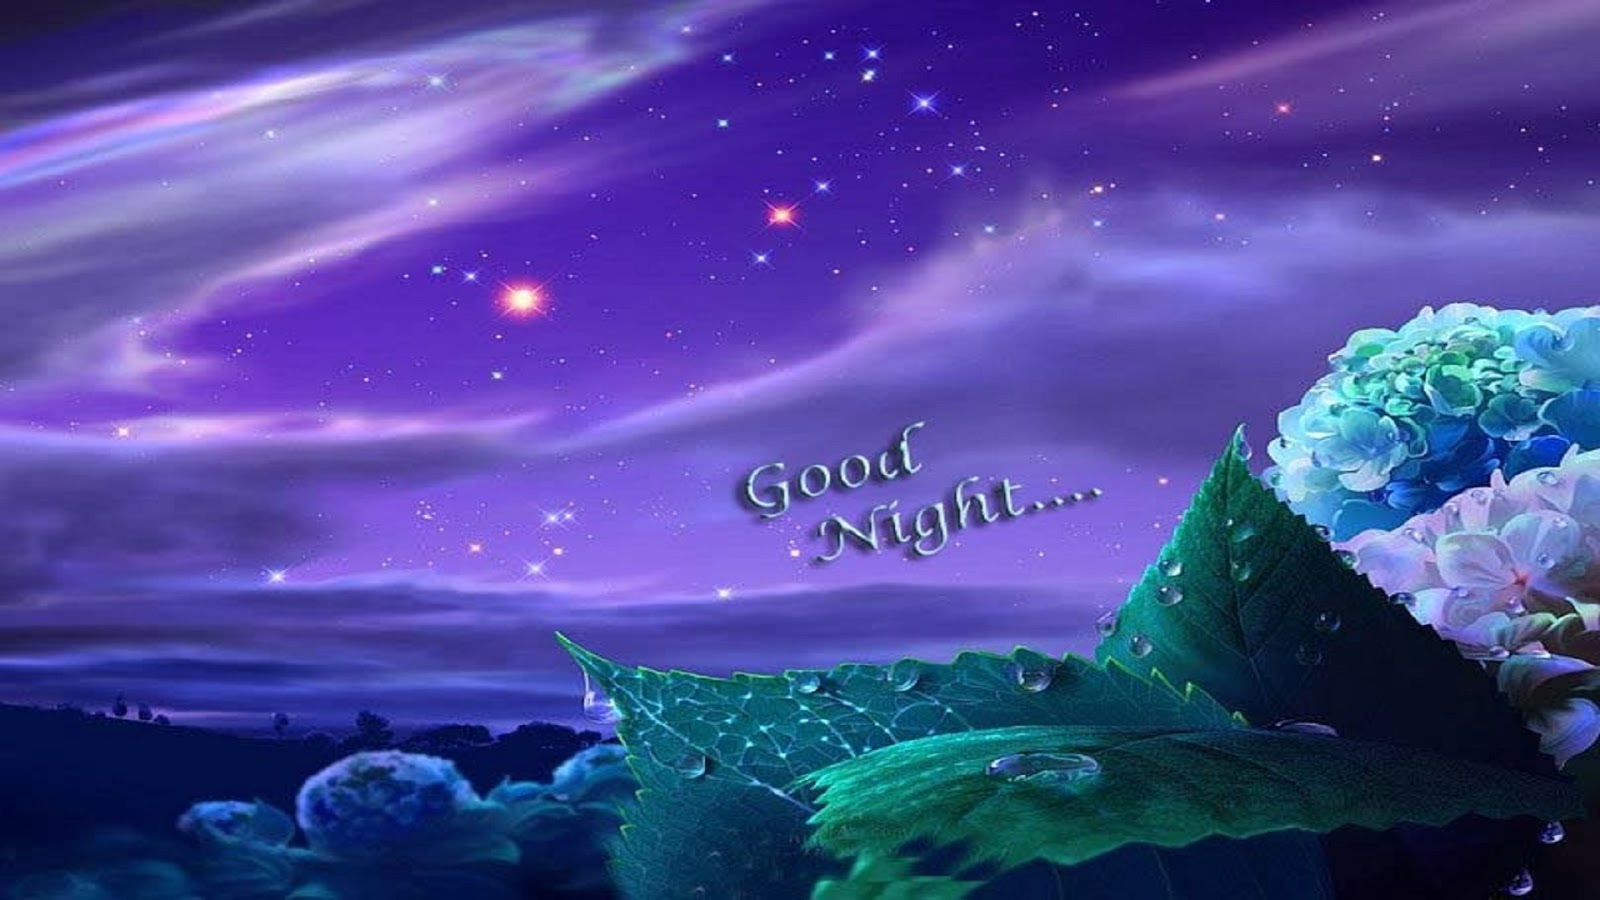 Free download good night wallpaper for pc voltagebd Choice Image